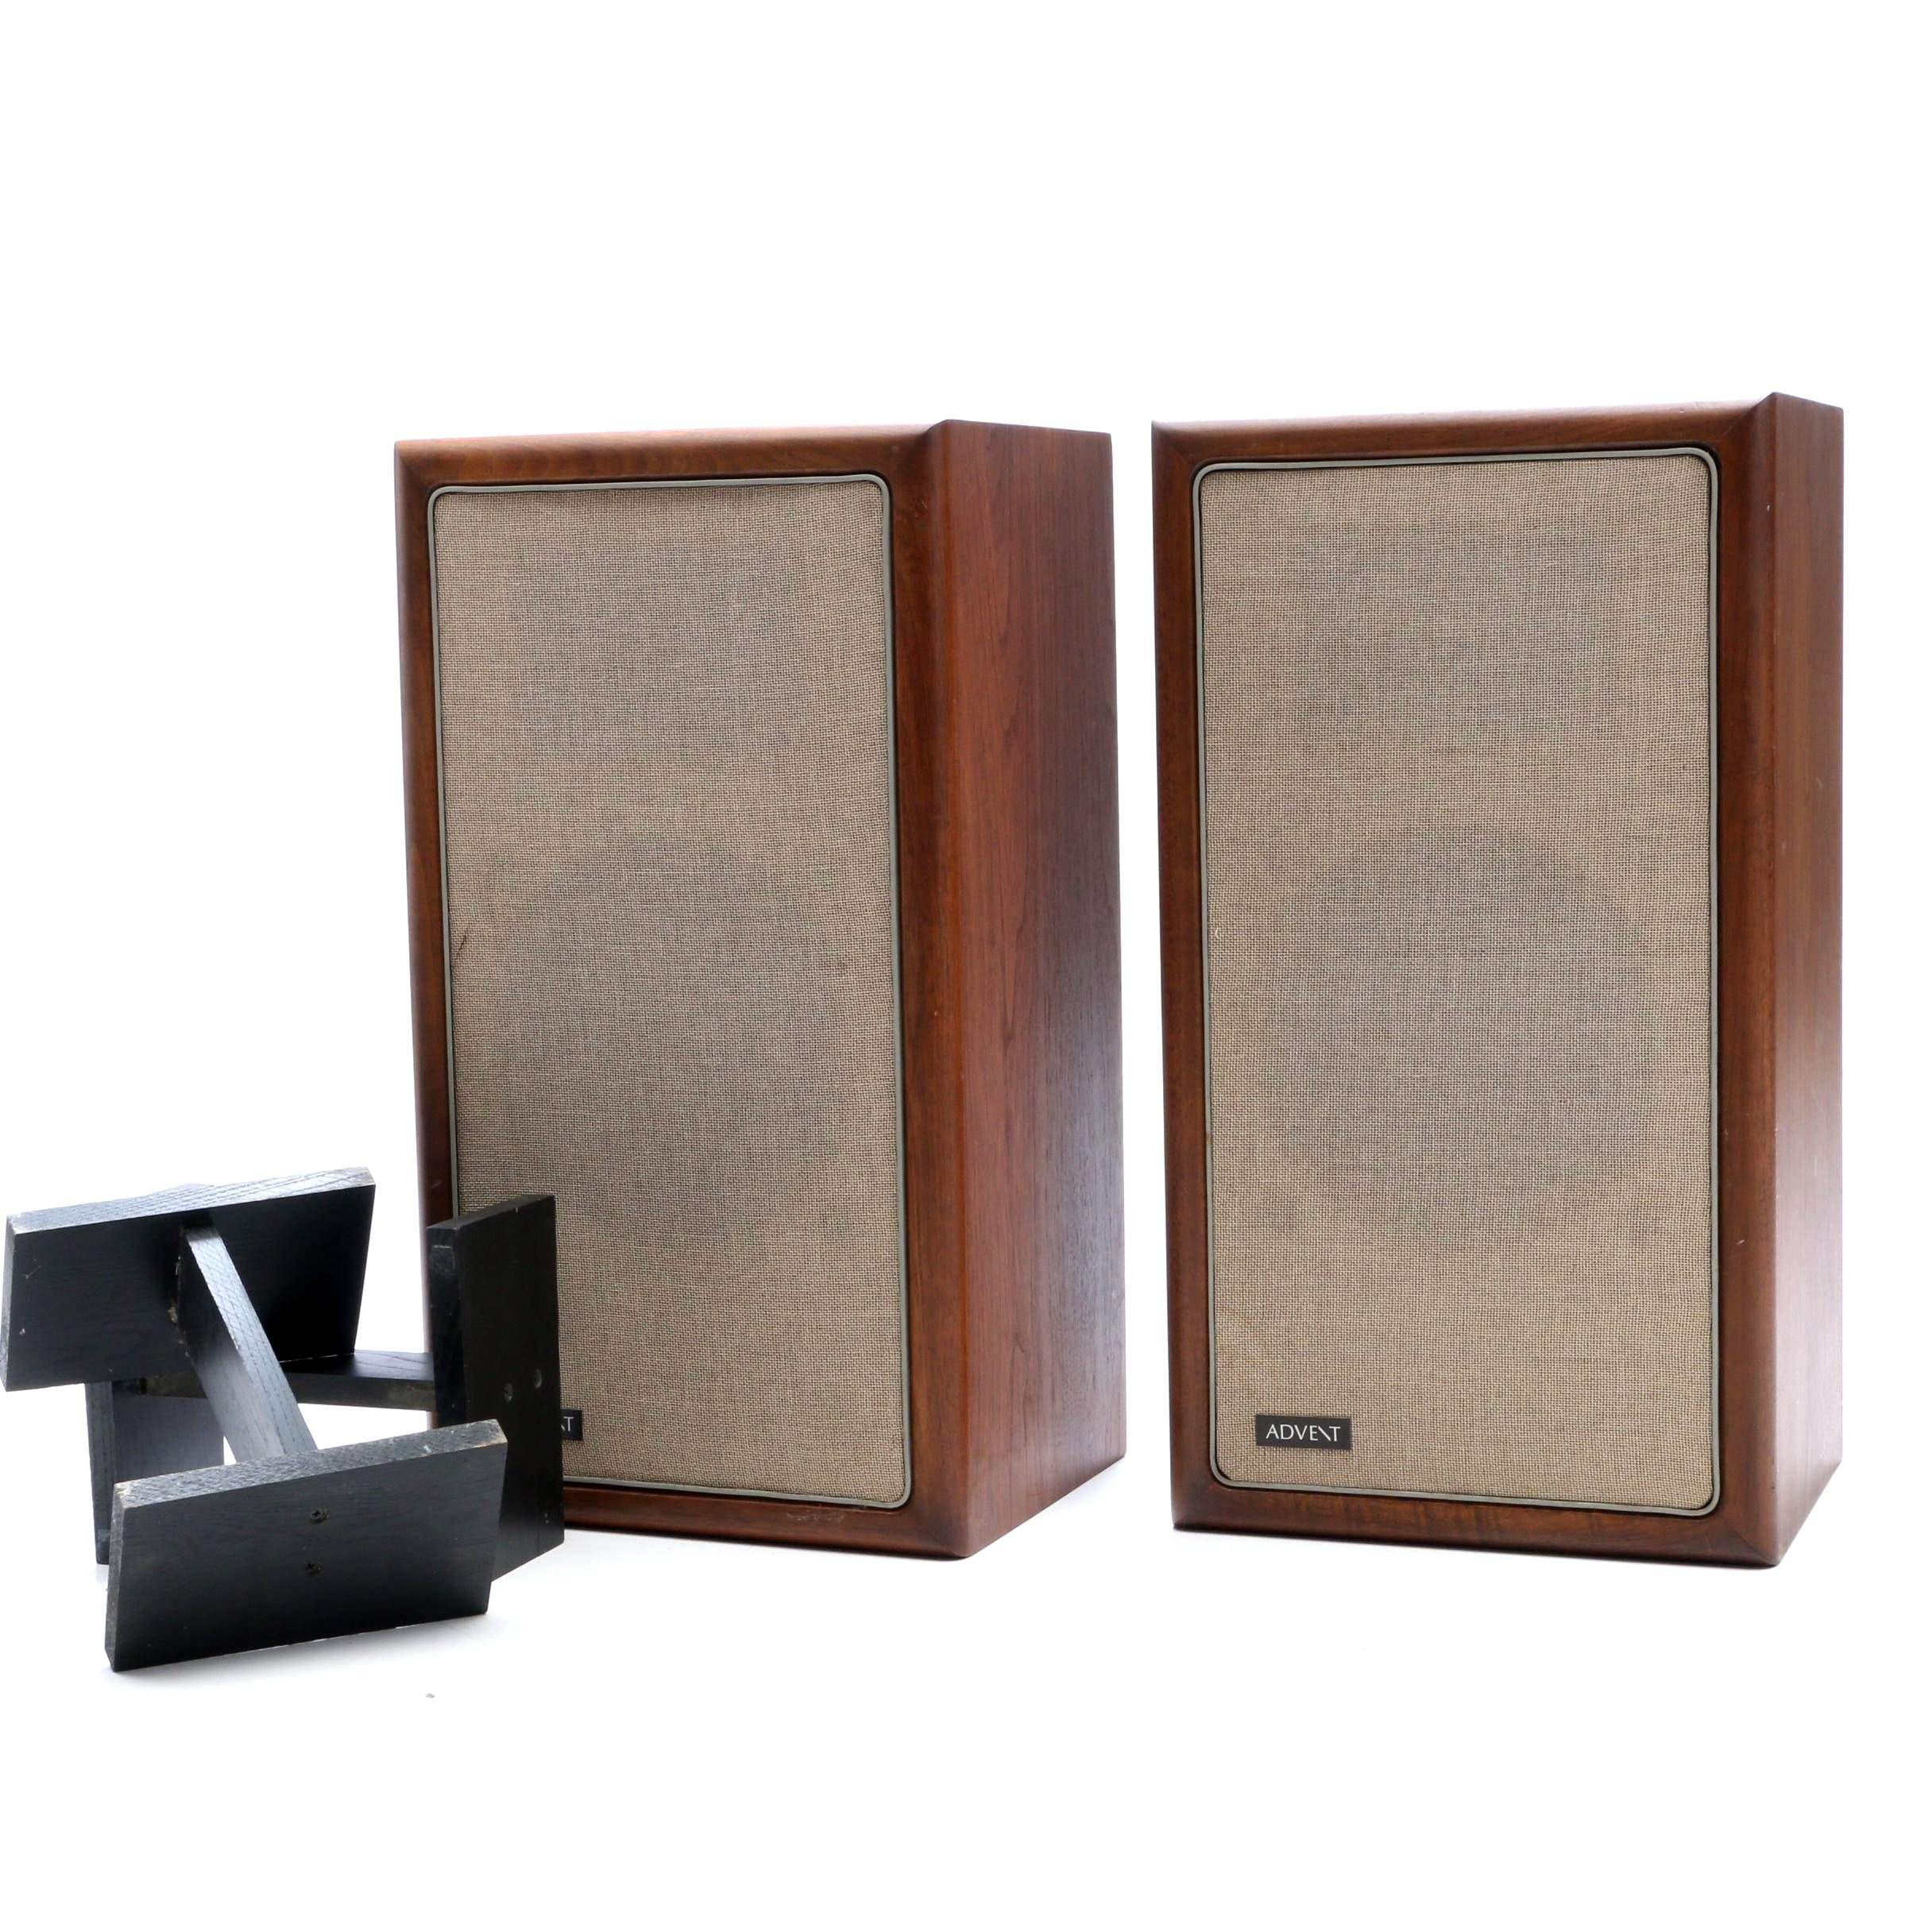 Vintage Advent Floor Speakers